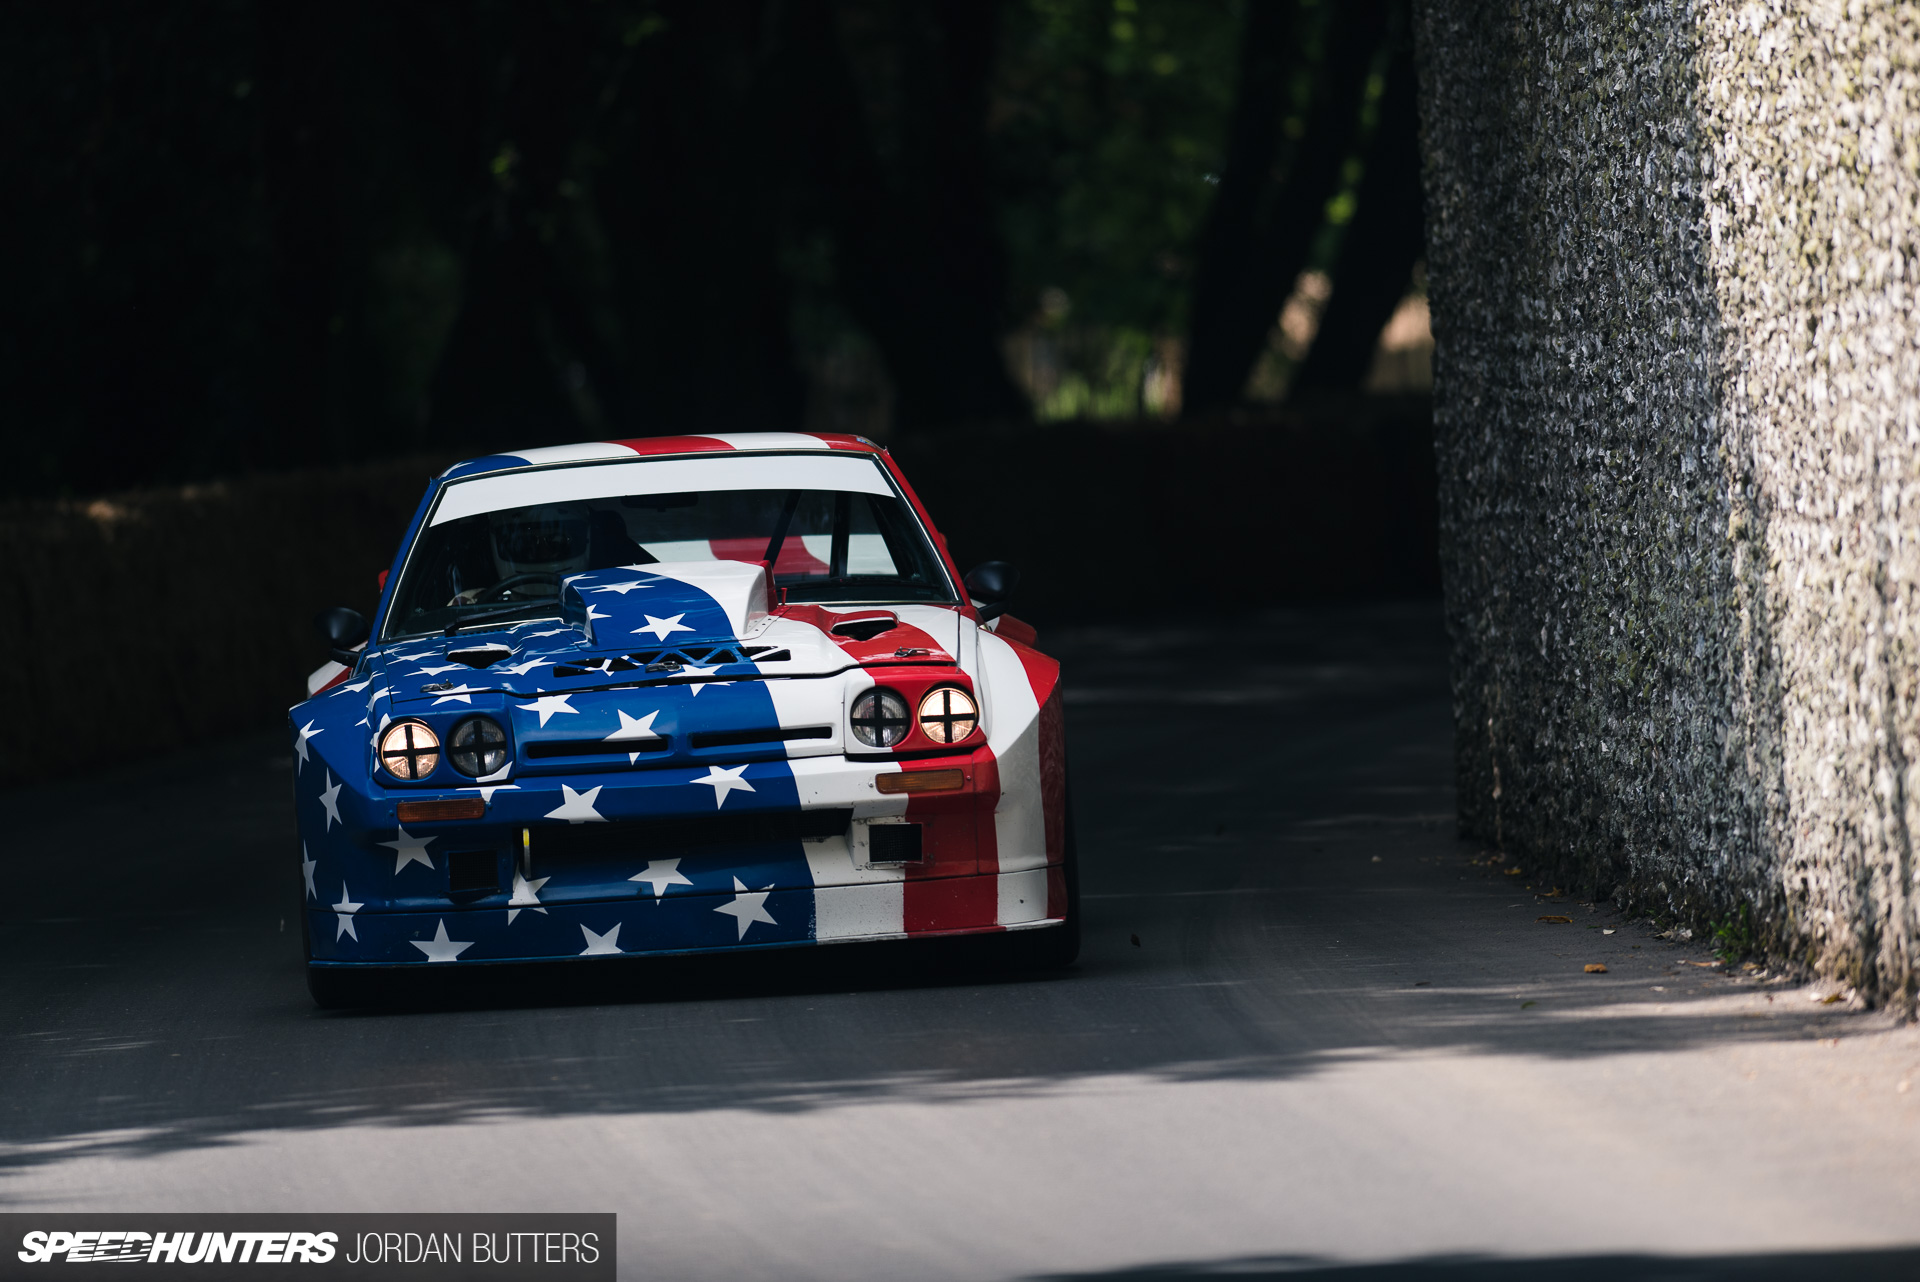 Wallpaper Car Tokyo Drift Livery Hunting At The Festival Of Speed Speedhunters